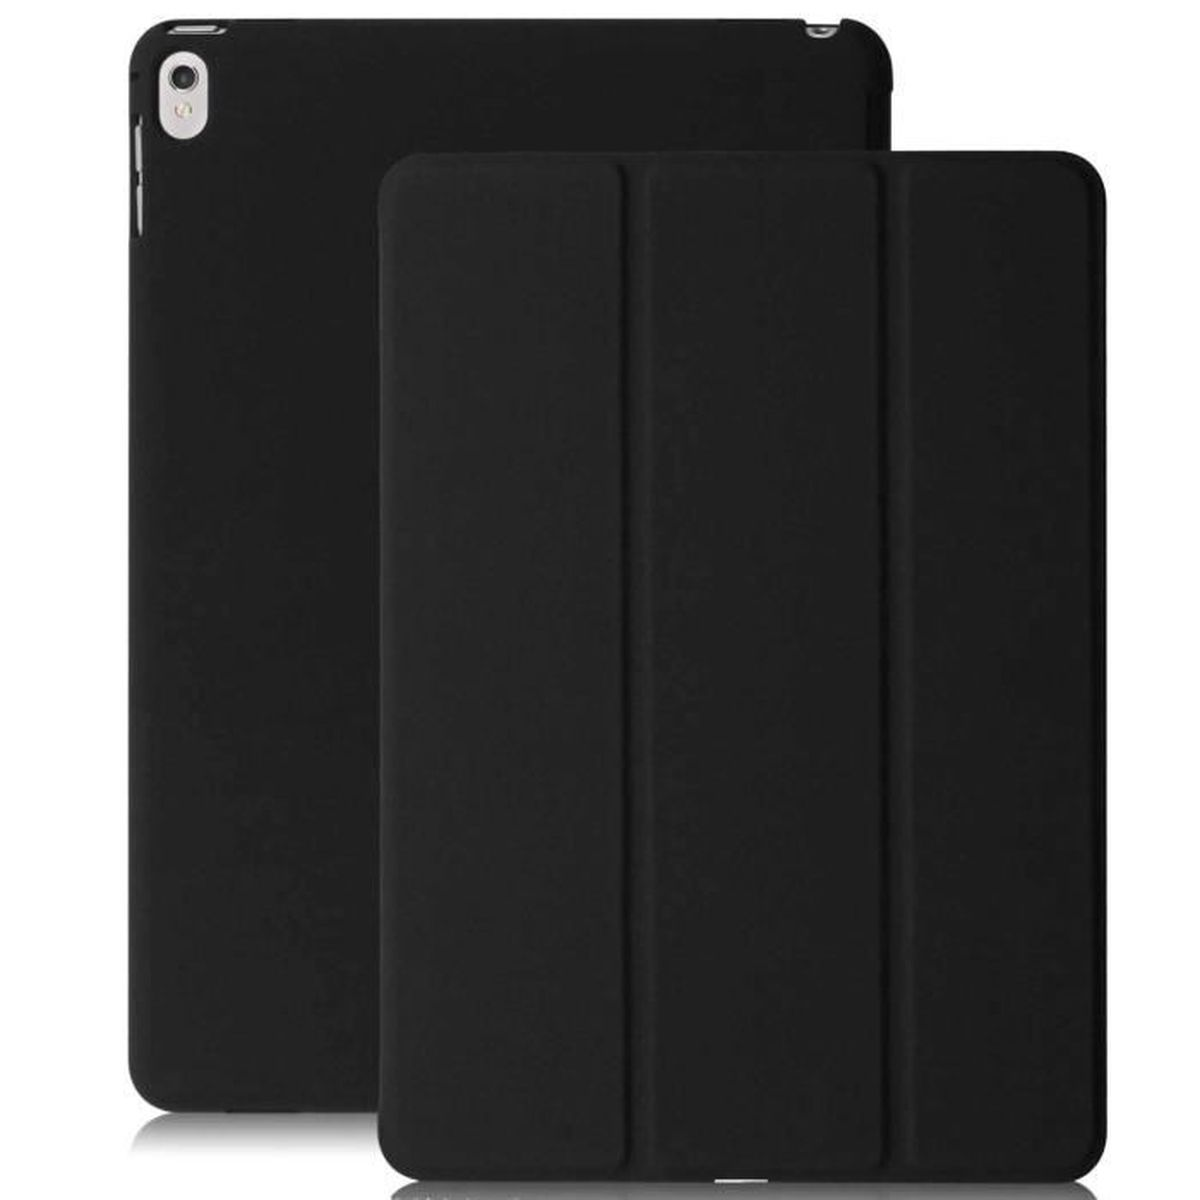 coque ipad pro 10 5 noir khomo etui housse dual tr s leger pour tablet apple prix pas cher. Black Bedroom Furniture Sets. Home Design Ideas